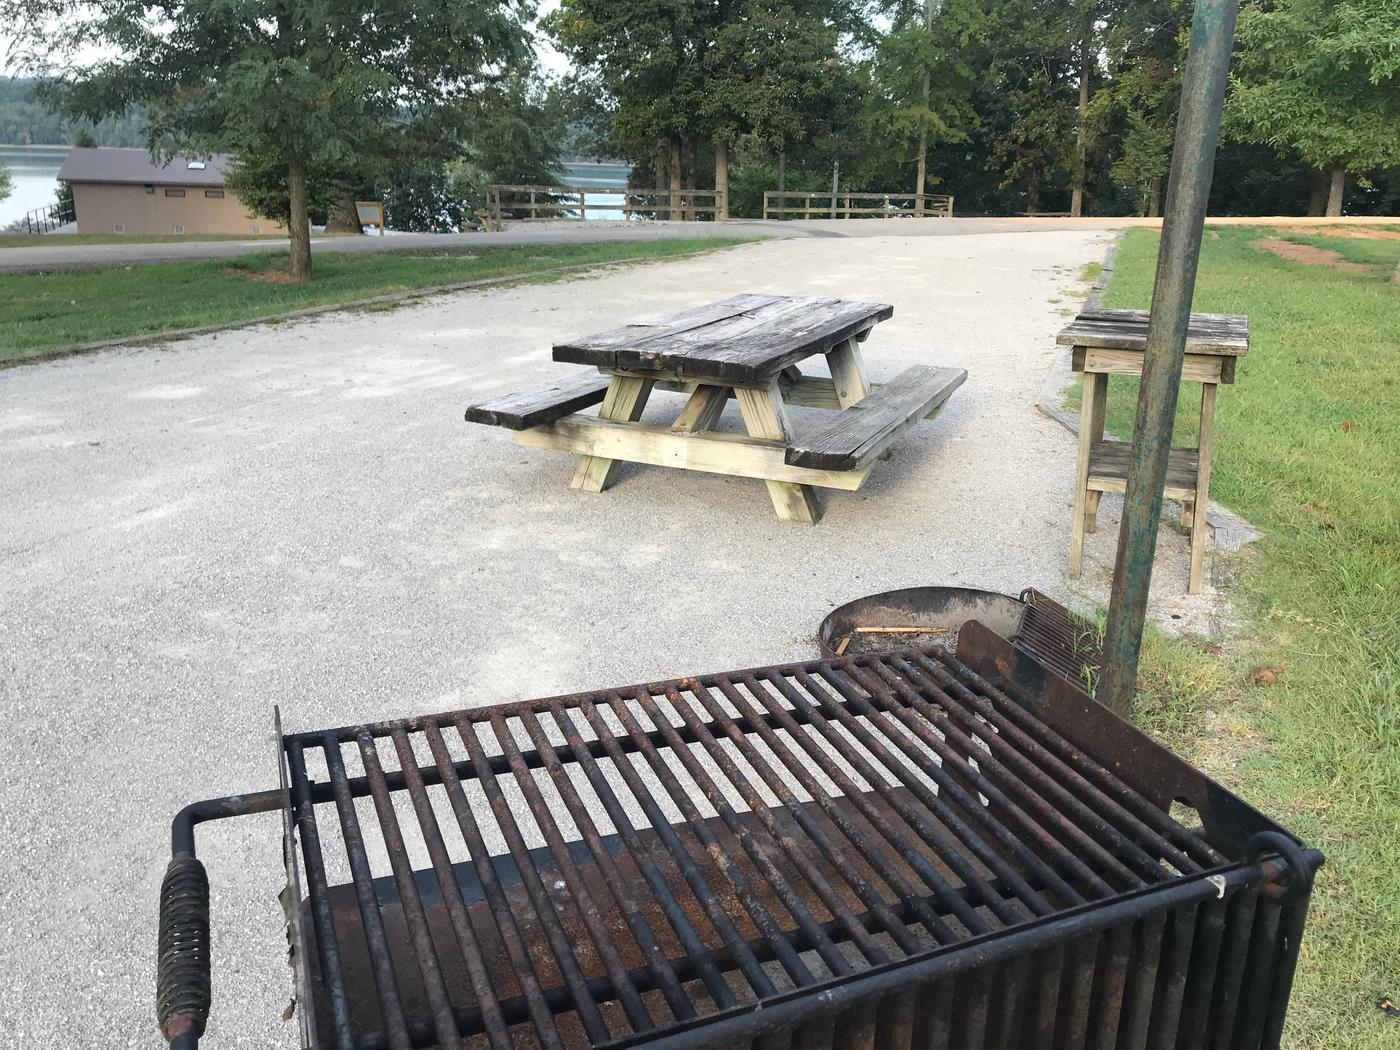 WILLOW GROVE CAMPGROUND SITE #76 TABLE AND PEDESTAL GRILLWILLOW GROVE CAMPGROUND SITE #76